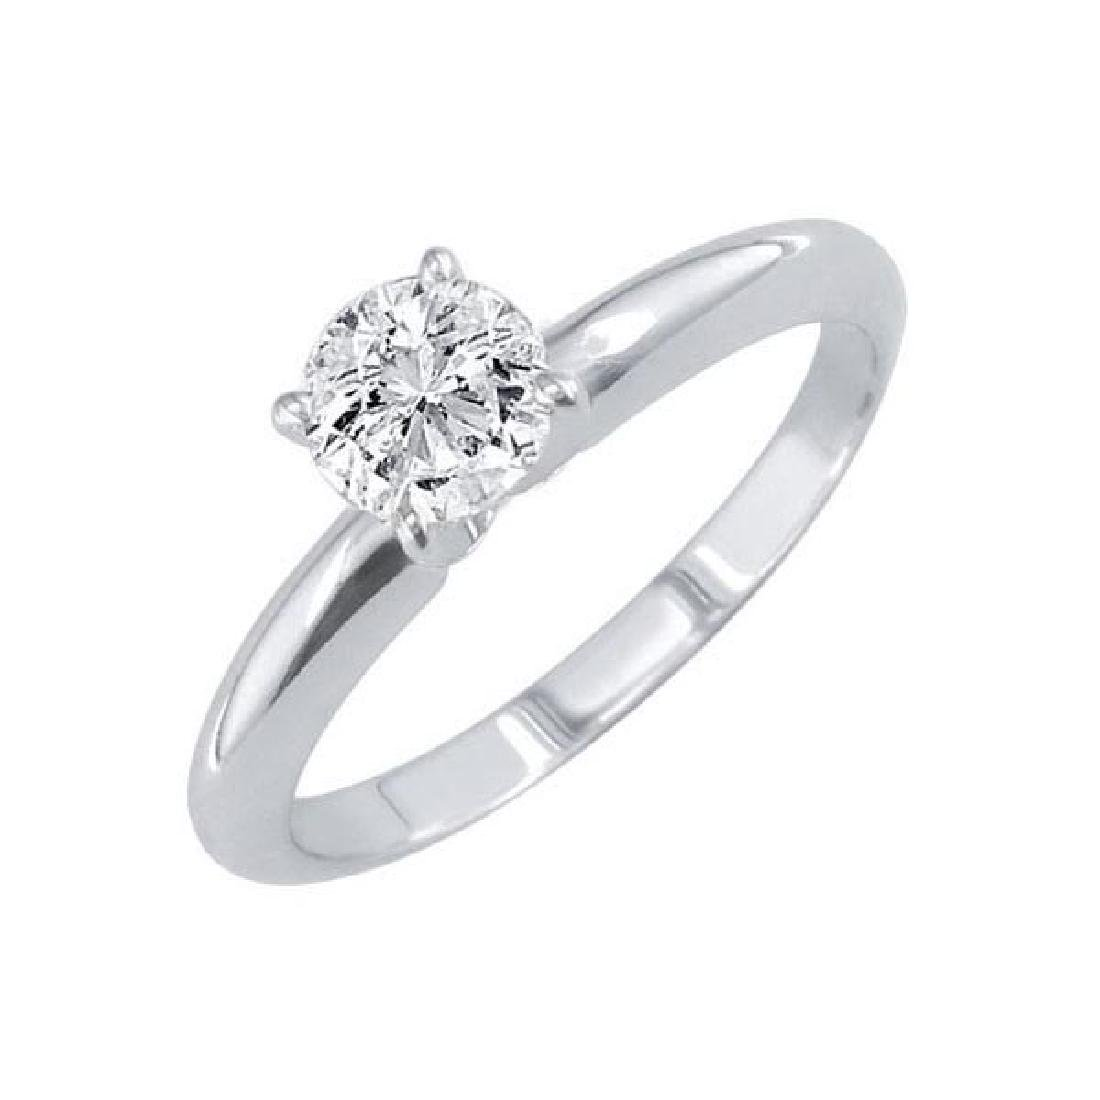 Certified 0.73 CTW Round Diamond Solitaire 14k Ring G/S